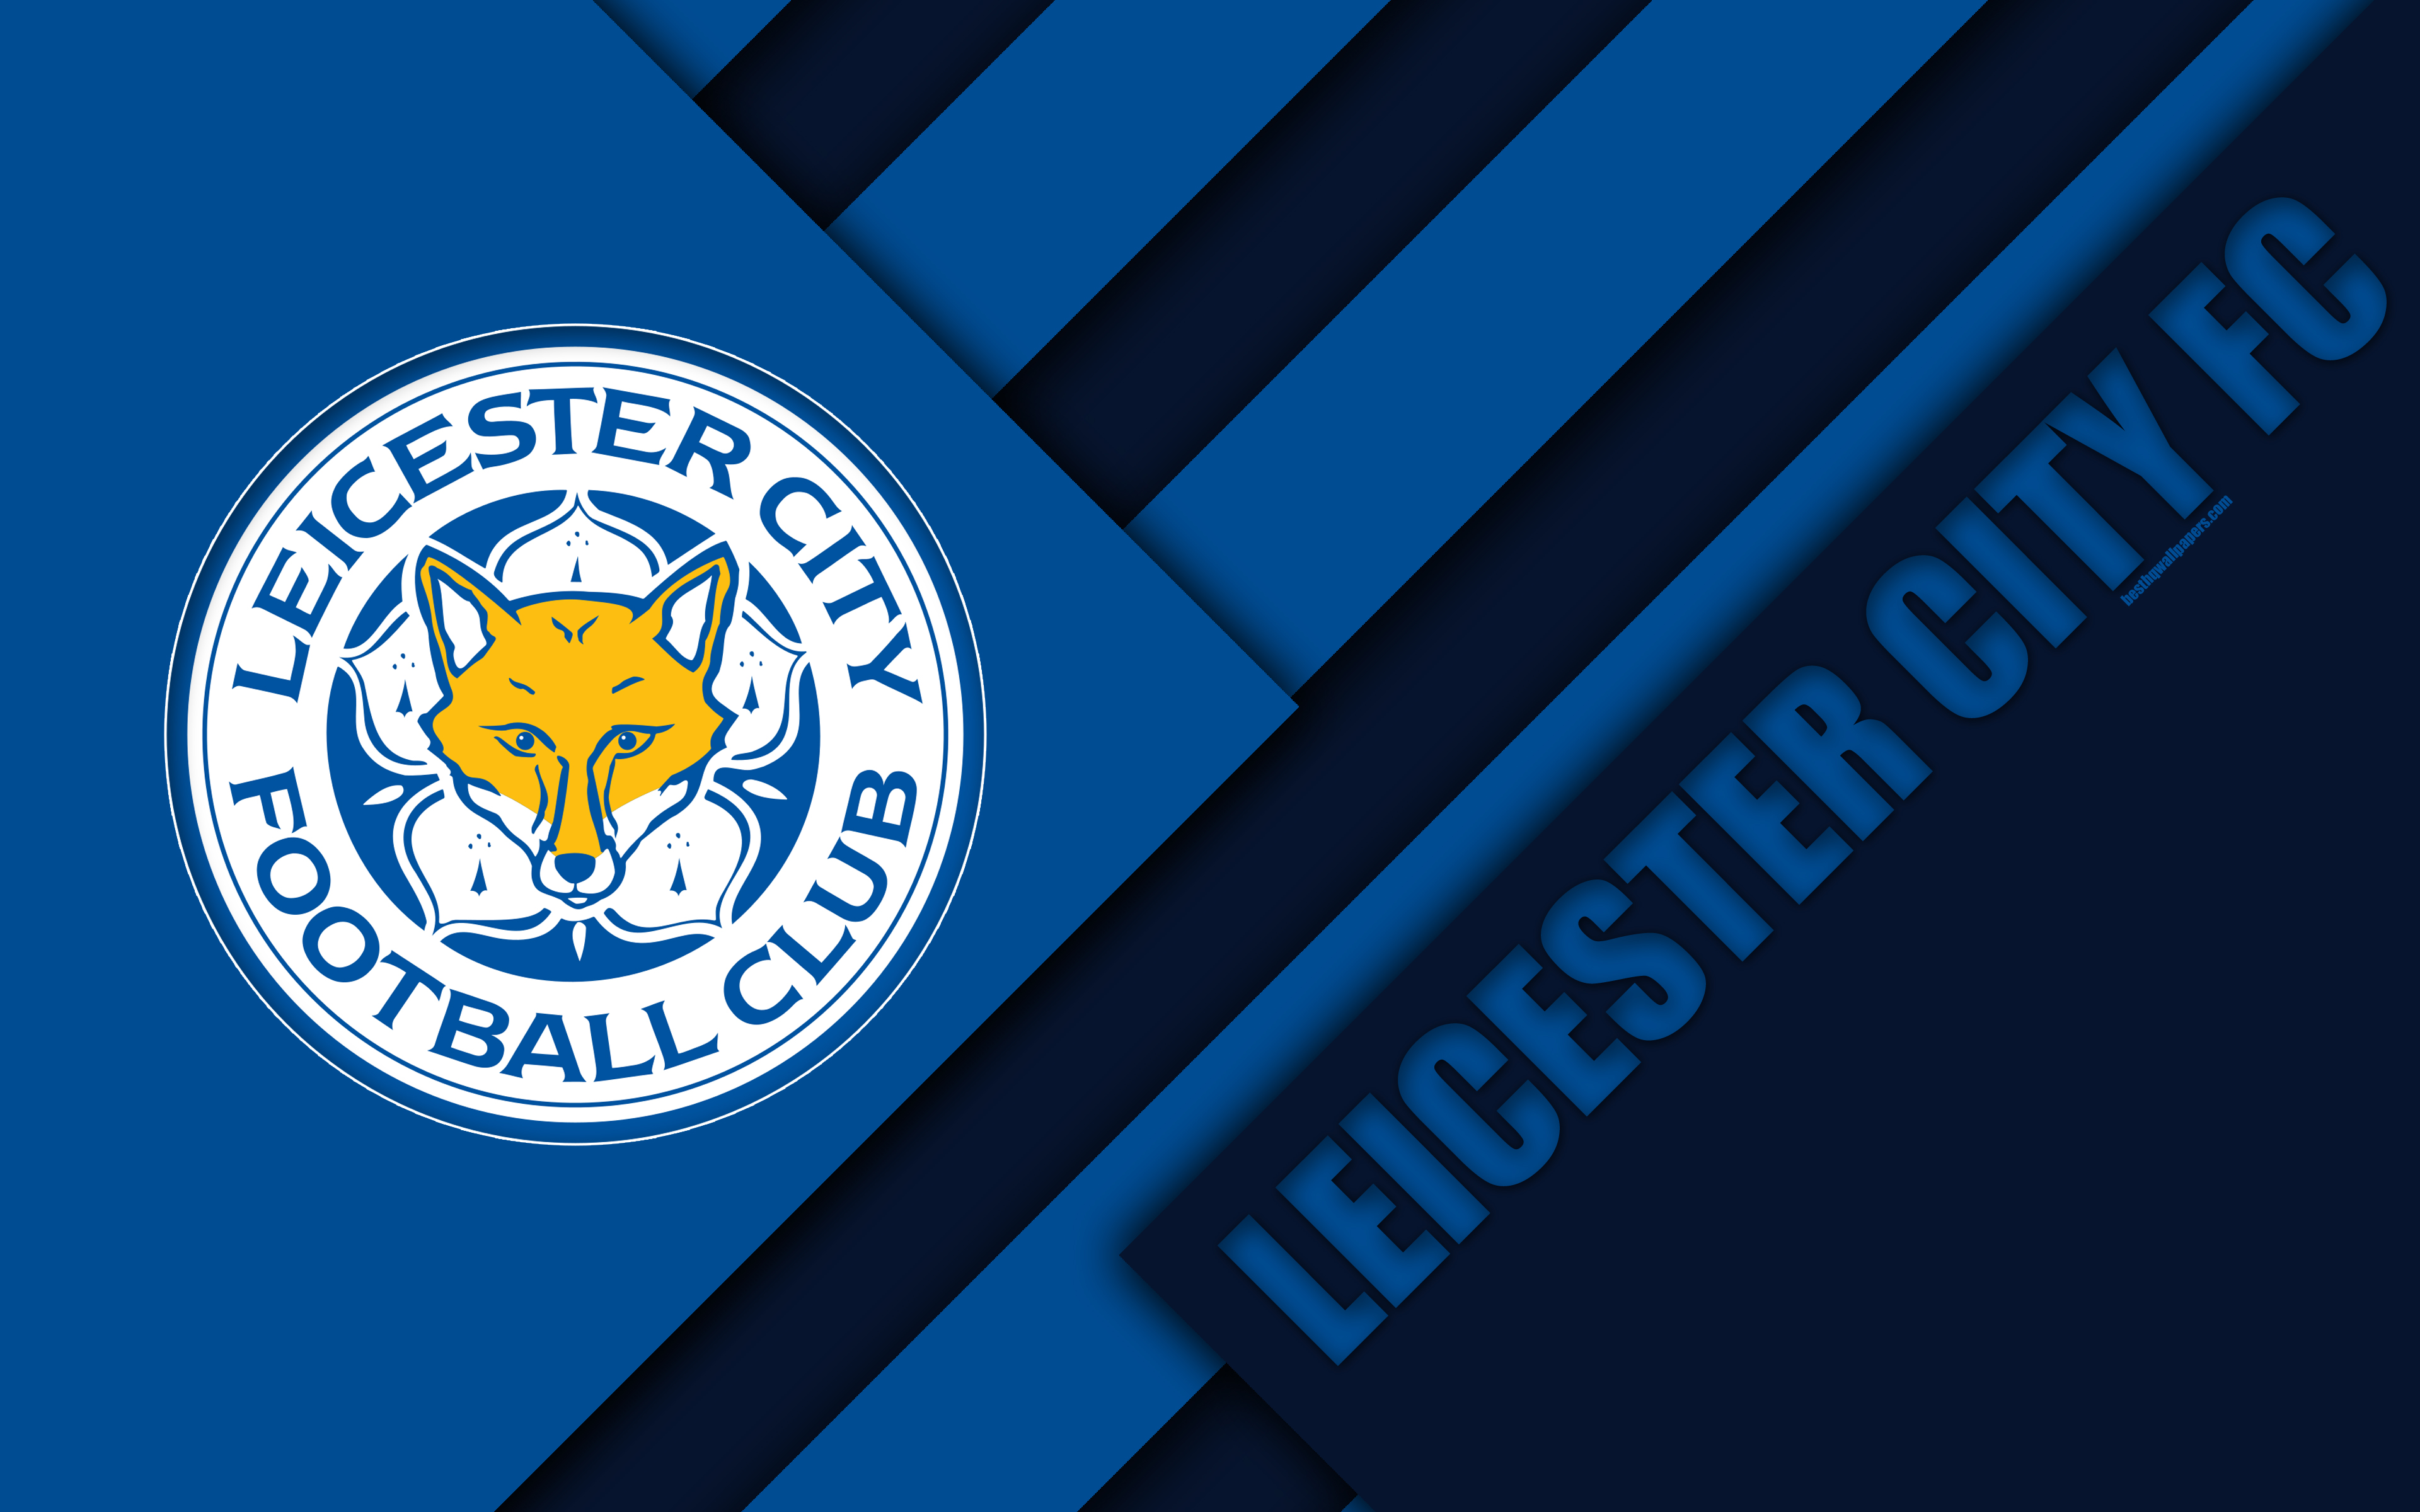 Download wallpapers Leicester City FC logo 4k material design 3840x2400